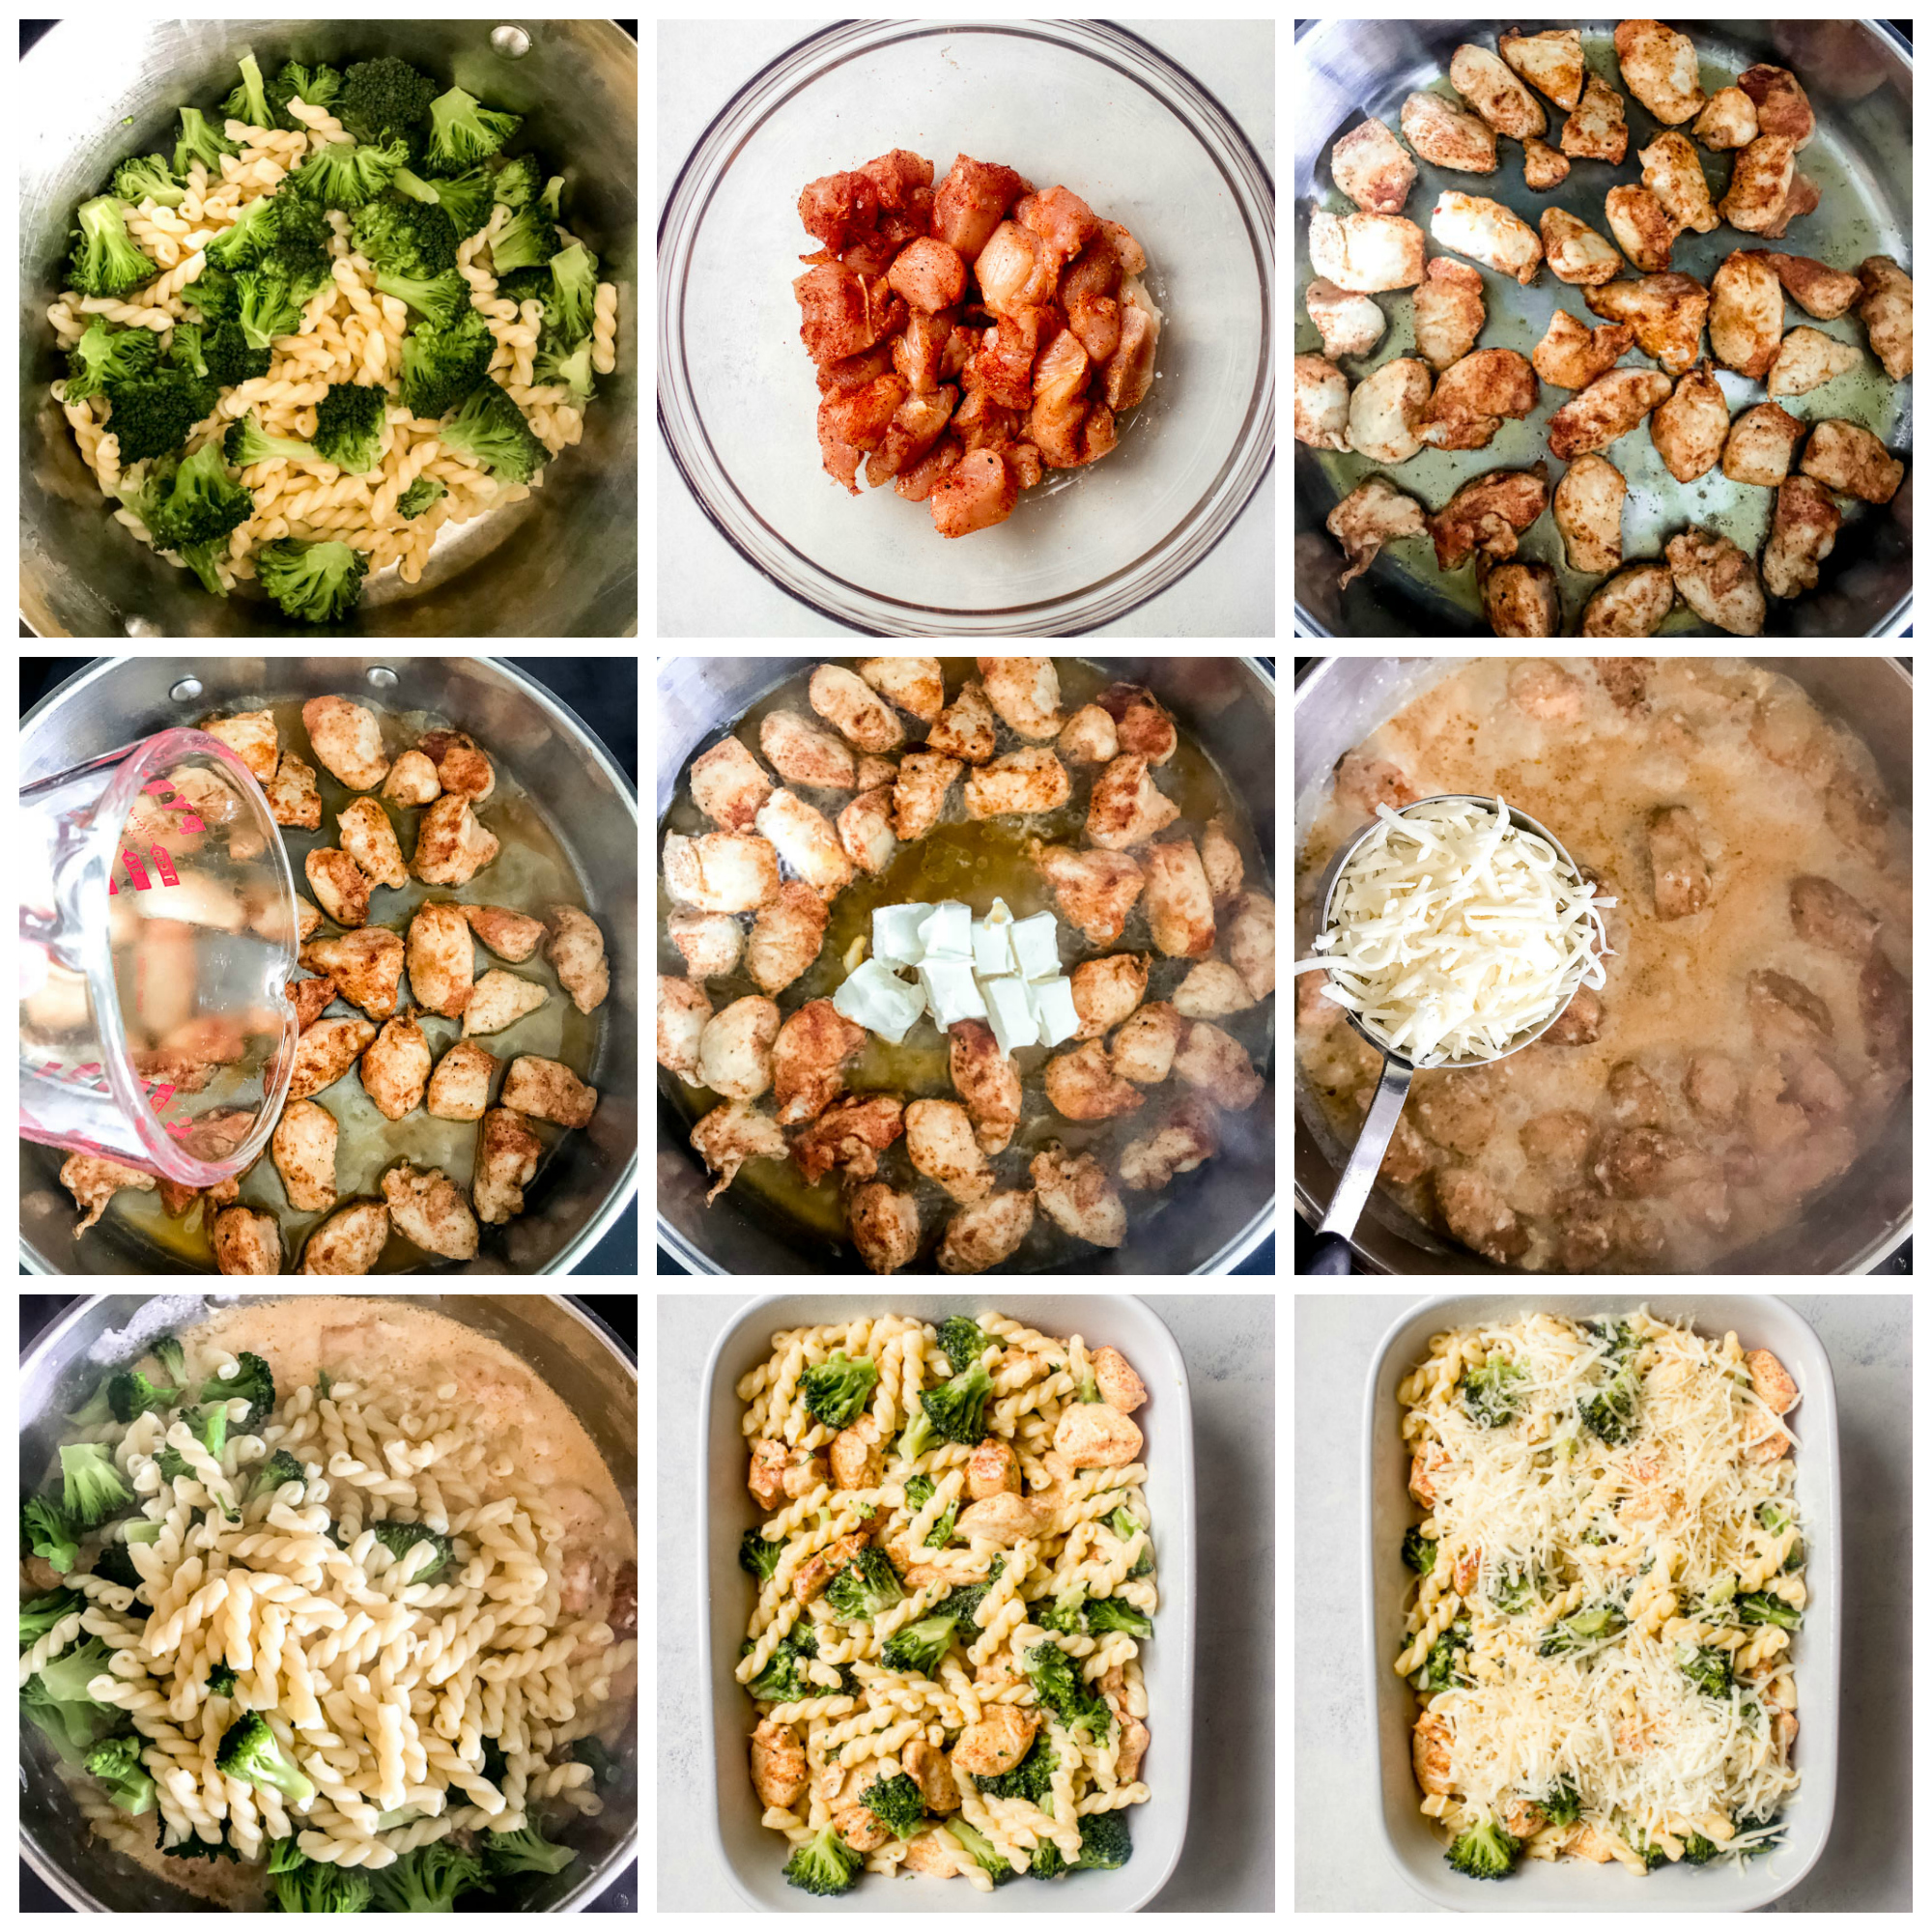 Step by step on how to make chicken pasta broccoli bake